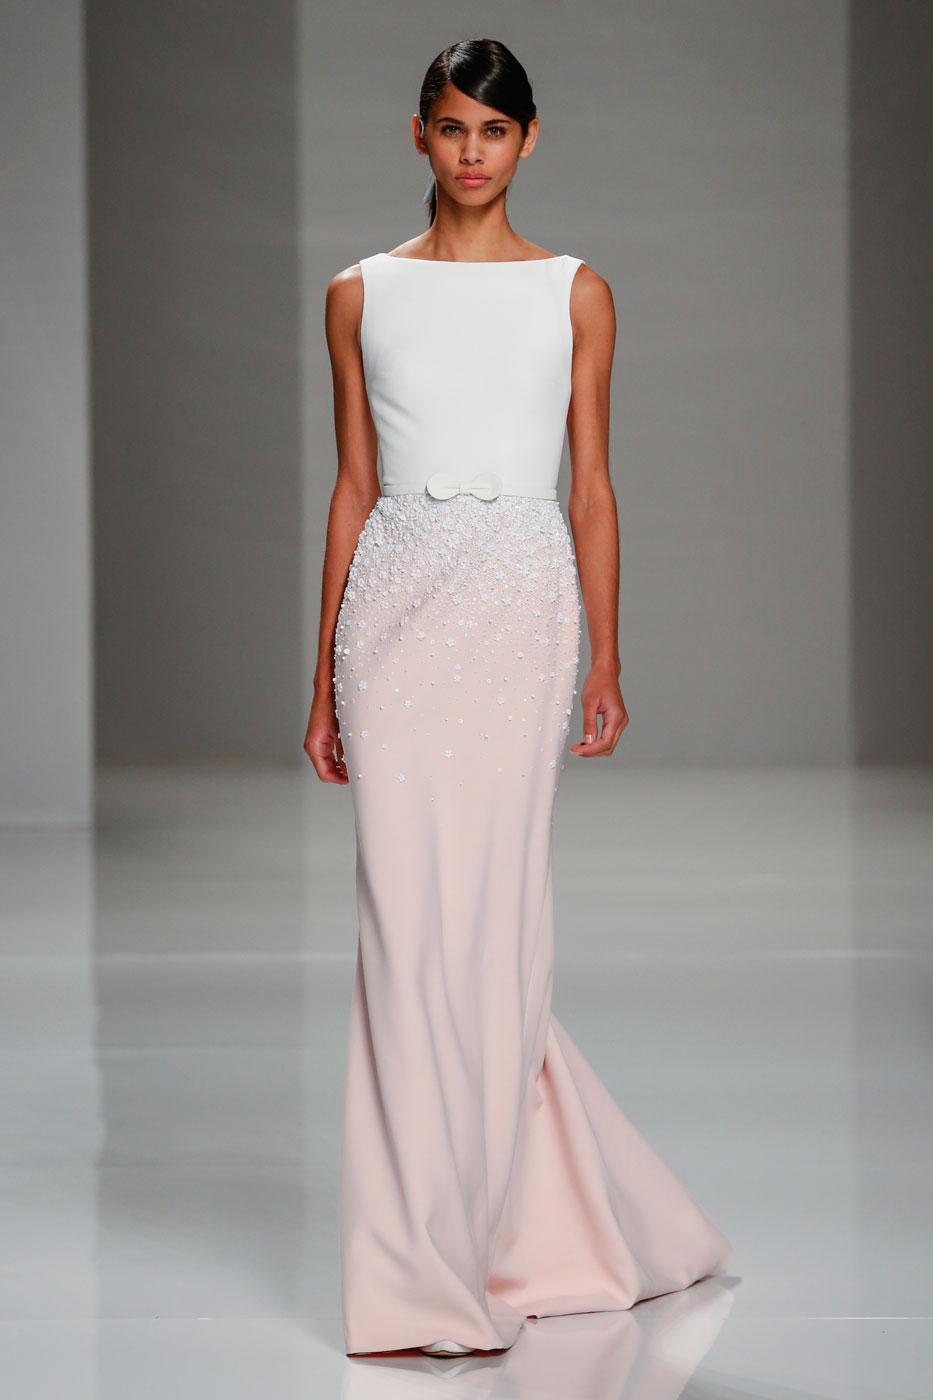 Georges-Hobeika-fashion-runway-show-haute-couture-paris-spring-2015-the-impression-71